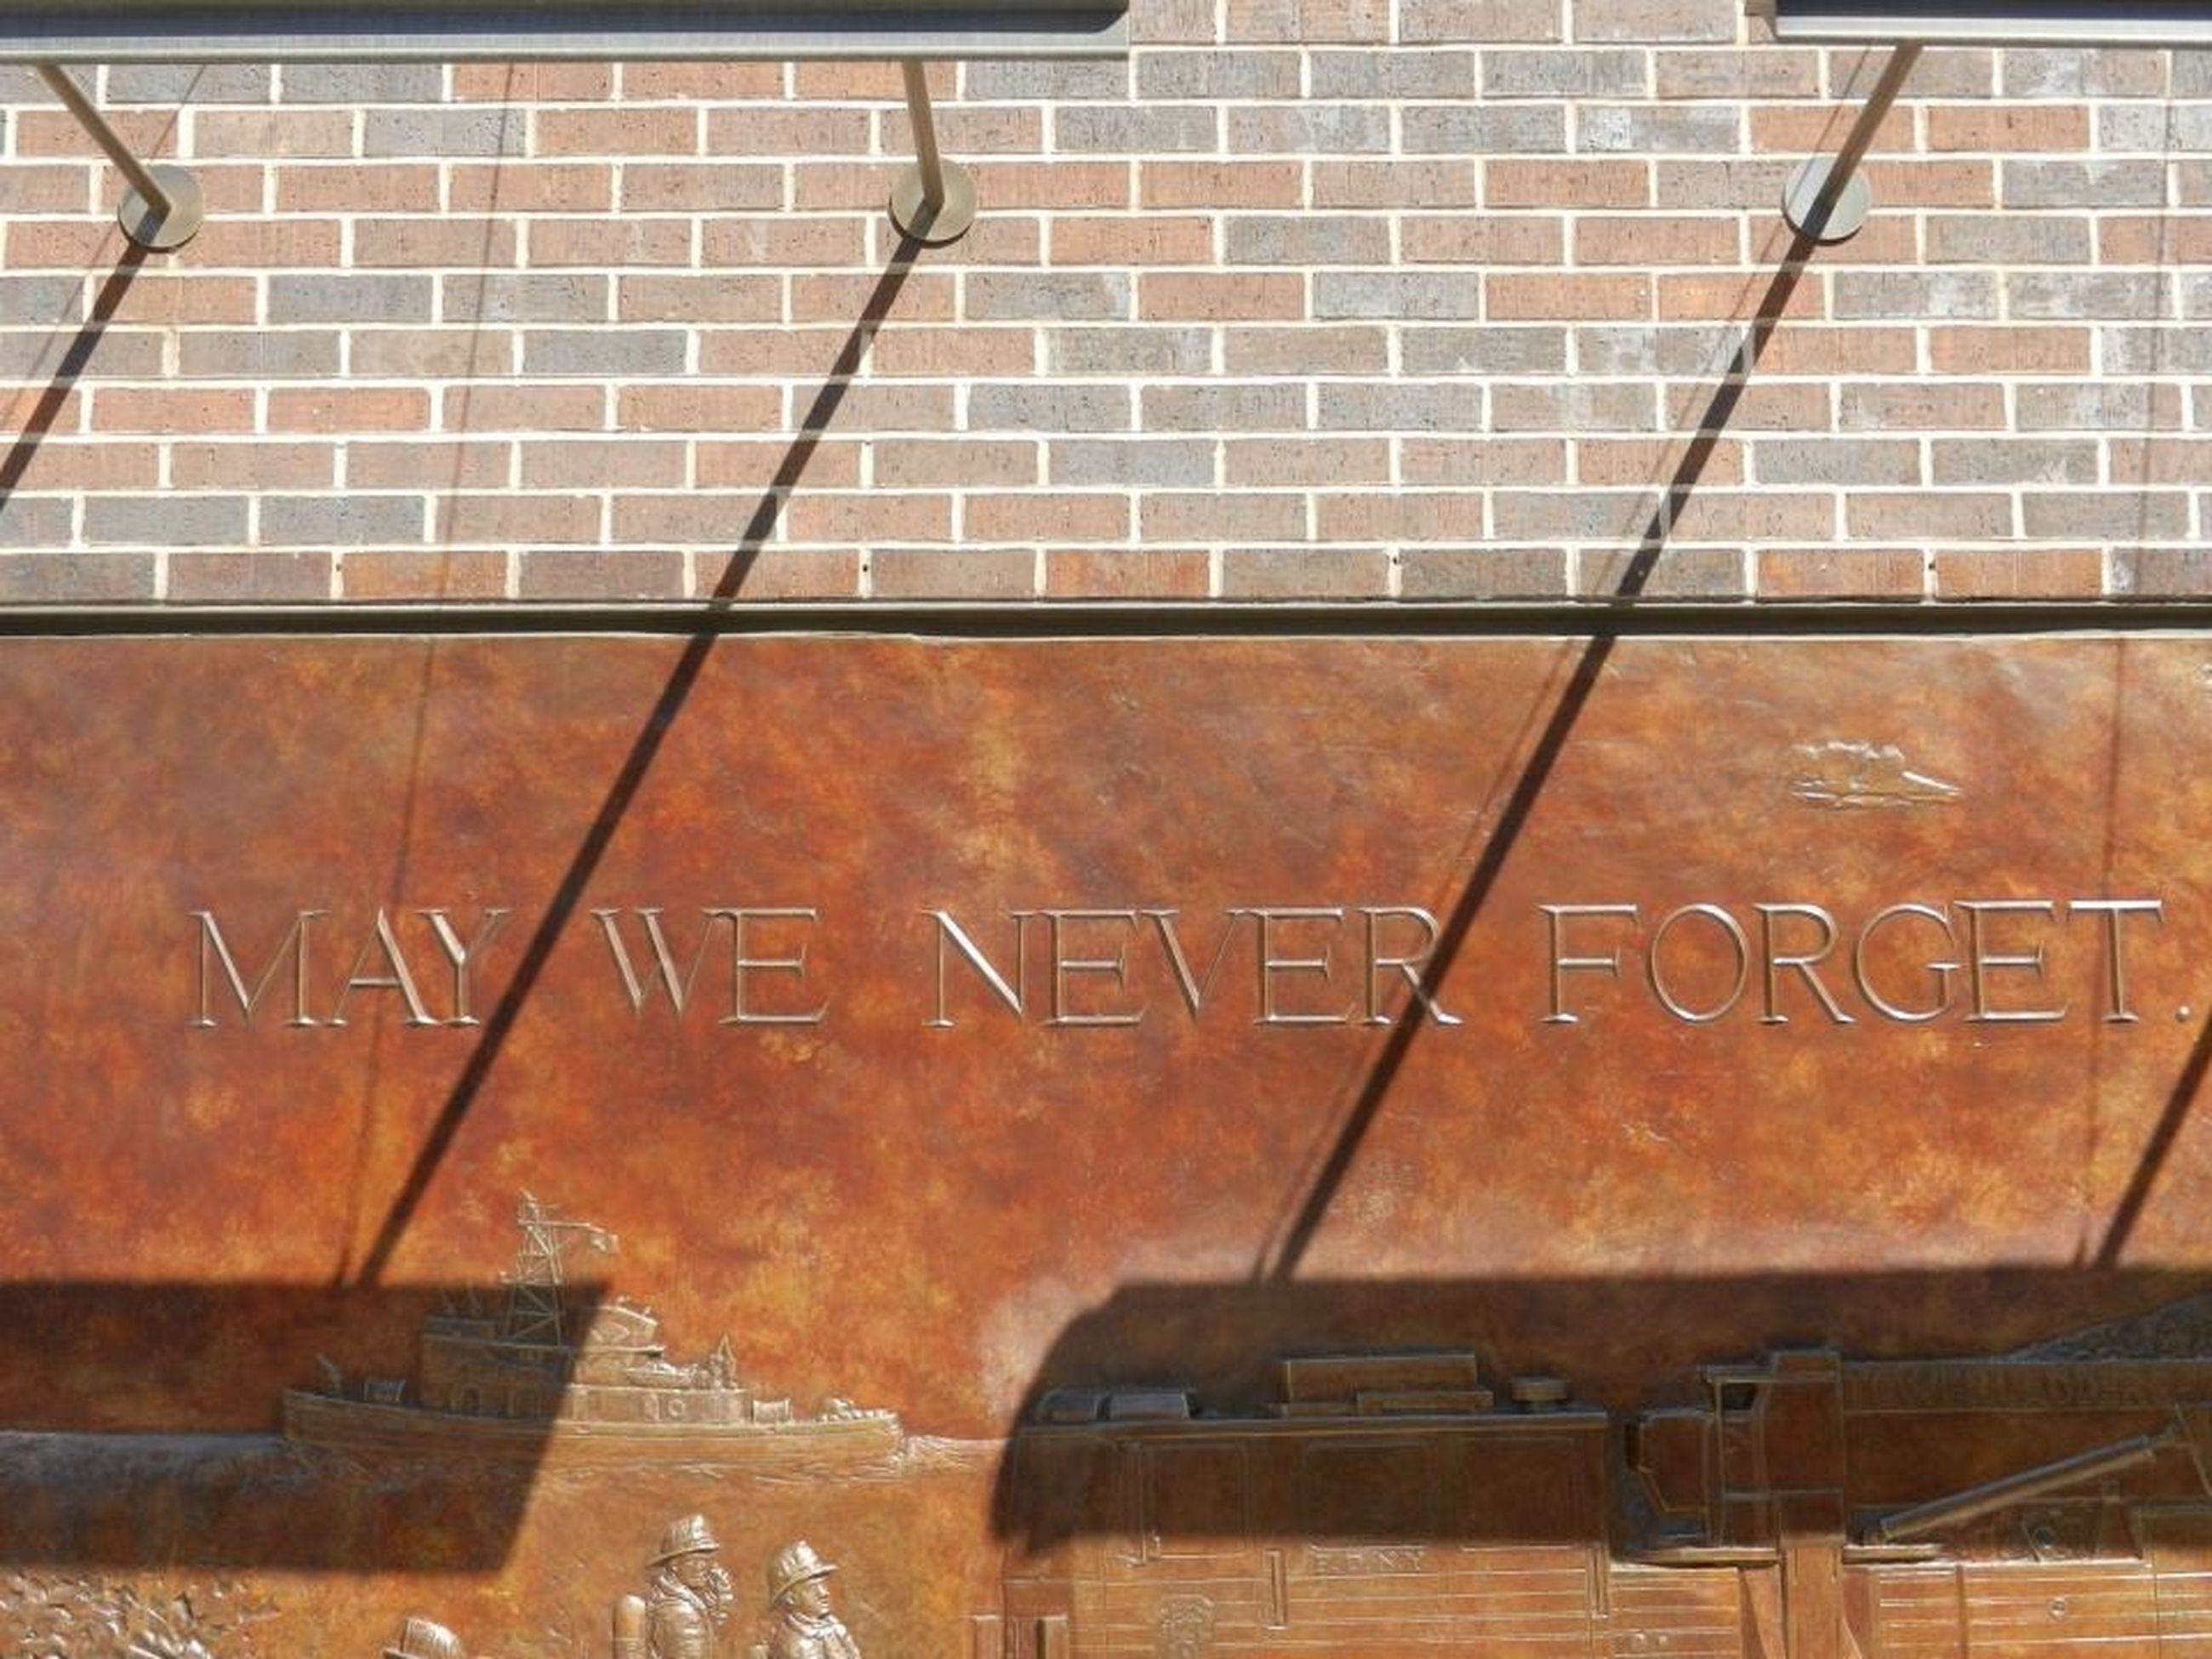 brick wall, brick, text, wall, western script, built structure, architecture, wall - building feature, communication, no people, capital letter, day, outdoors, building exterior, glass - material, sign, information, old, metal, message